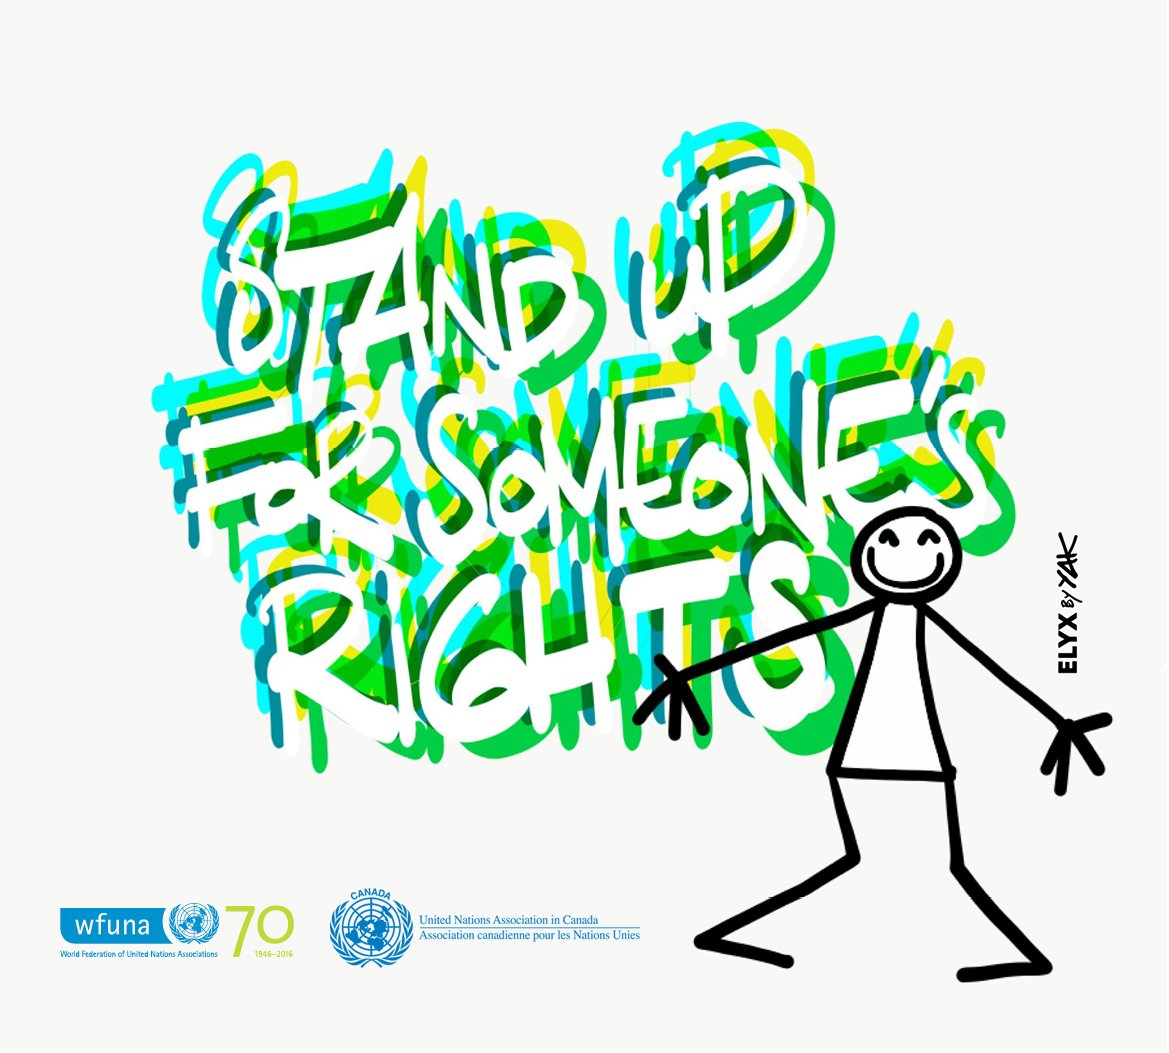 December 10th is #HumanRightsDay. Stand up for someone's rights and have a very happy holidays.#StandUp4HumanRights  #UNAs4HumanRights https://t.co/wfasw6l7kh